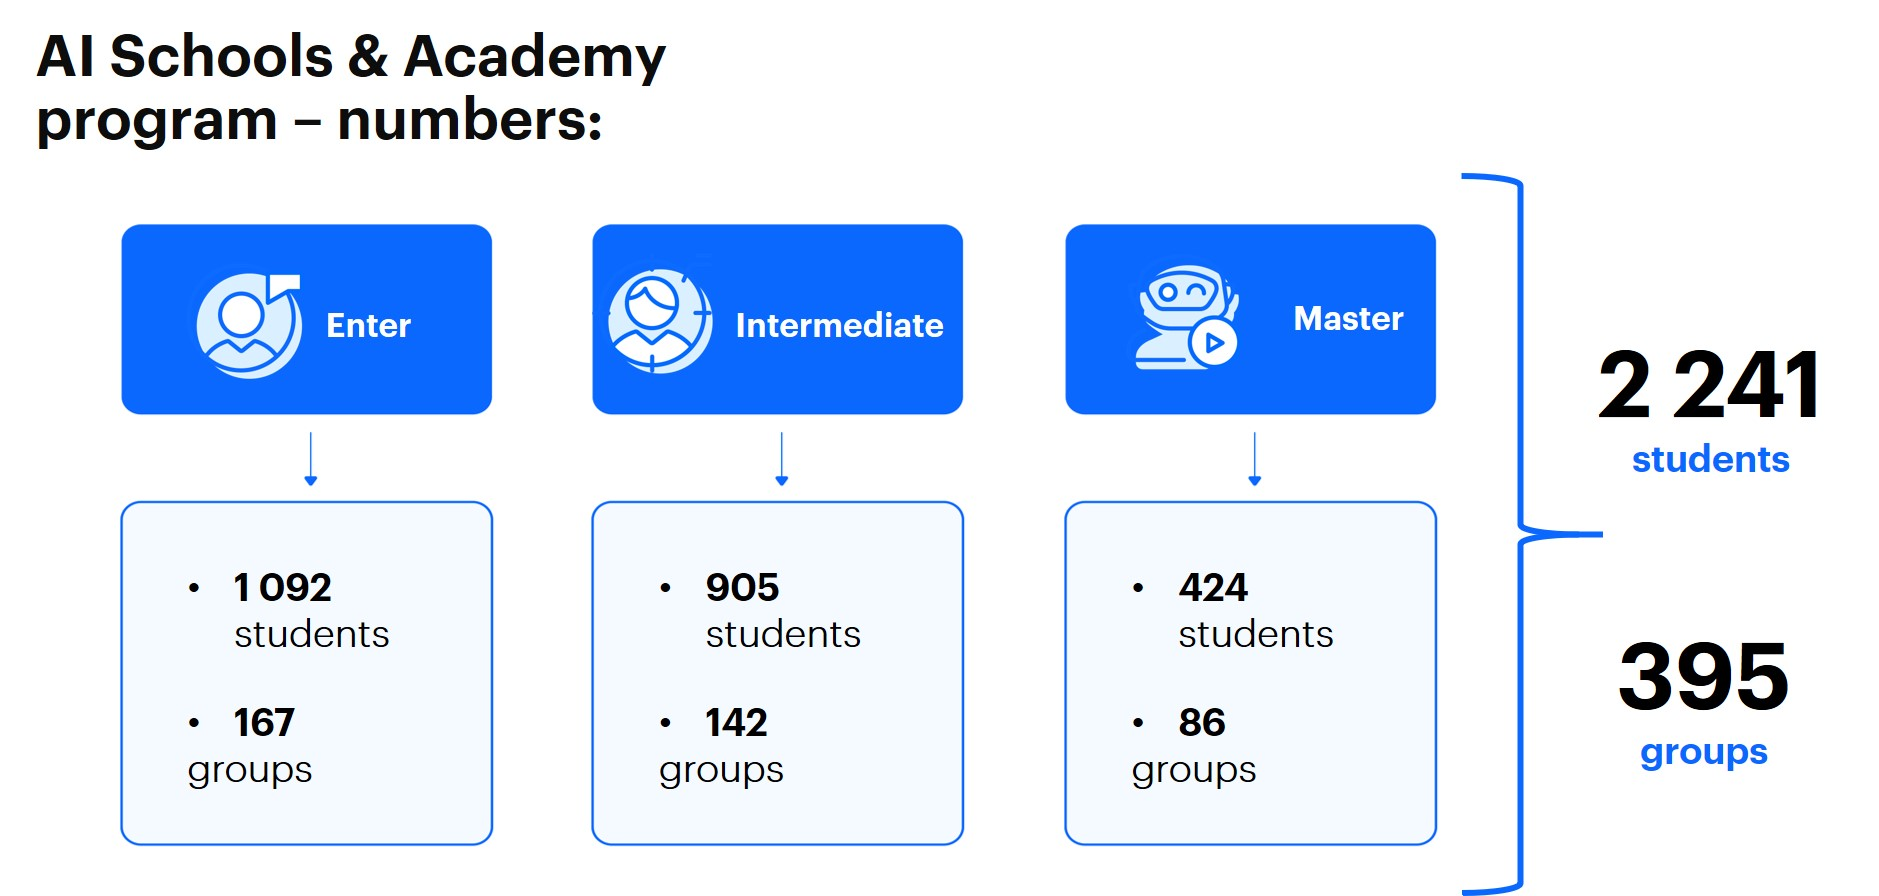 AI Schools and Academy program in numbers